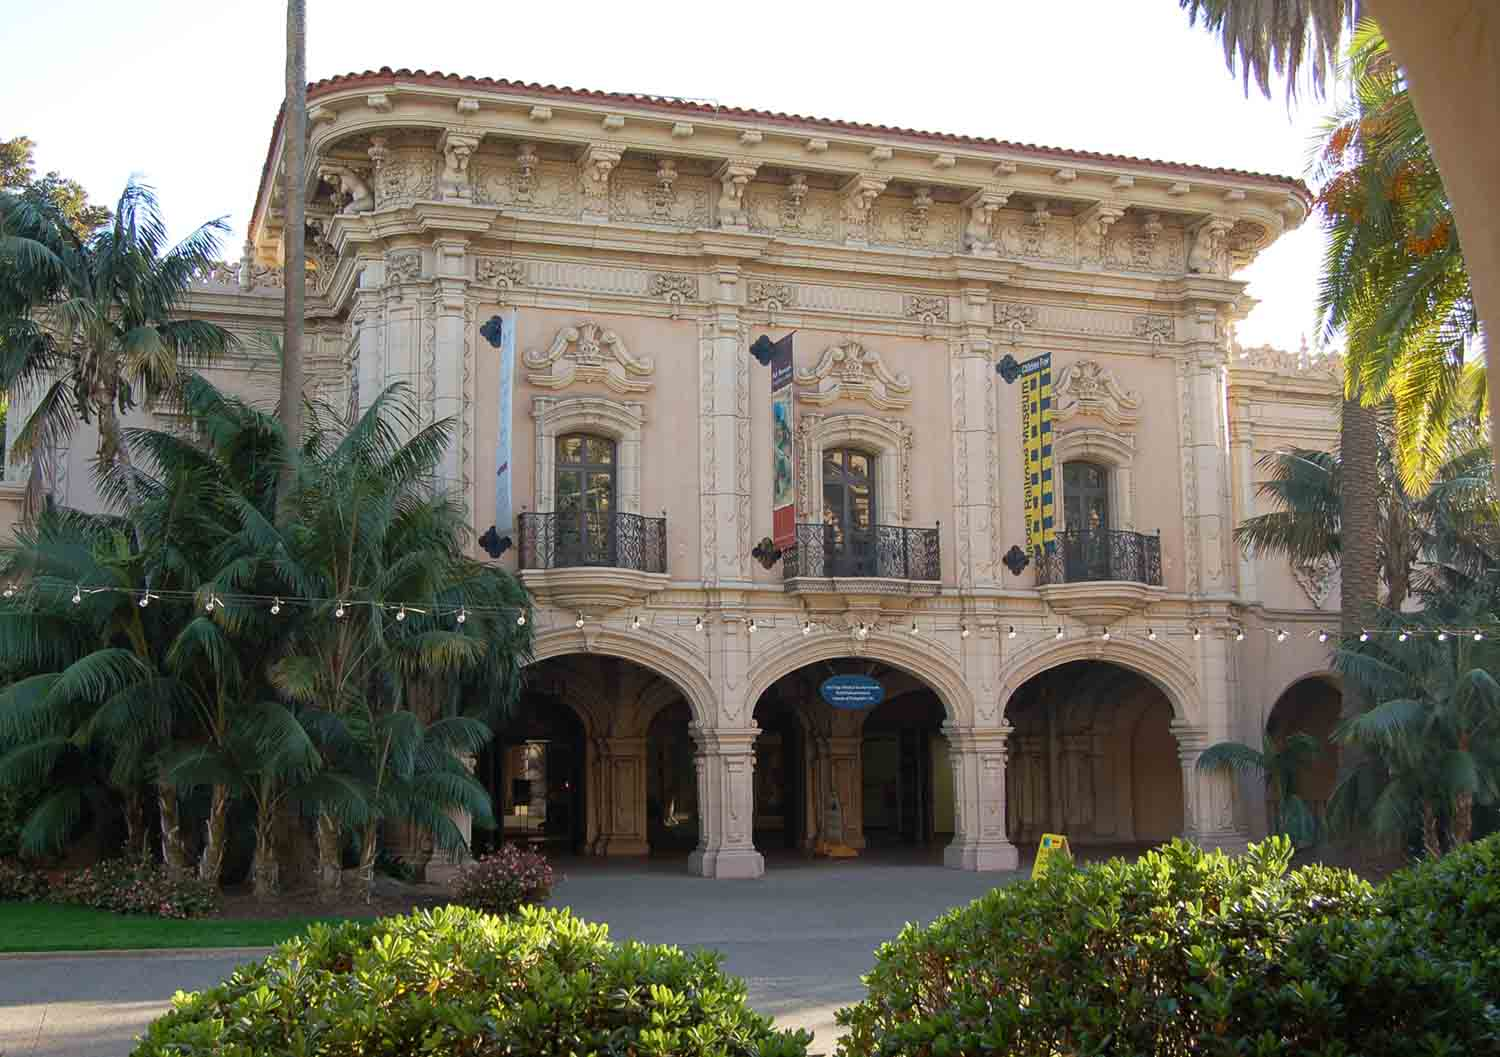 San Diego Zoo San Diego, San Diego History Center | Places To See in San Diego